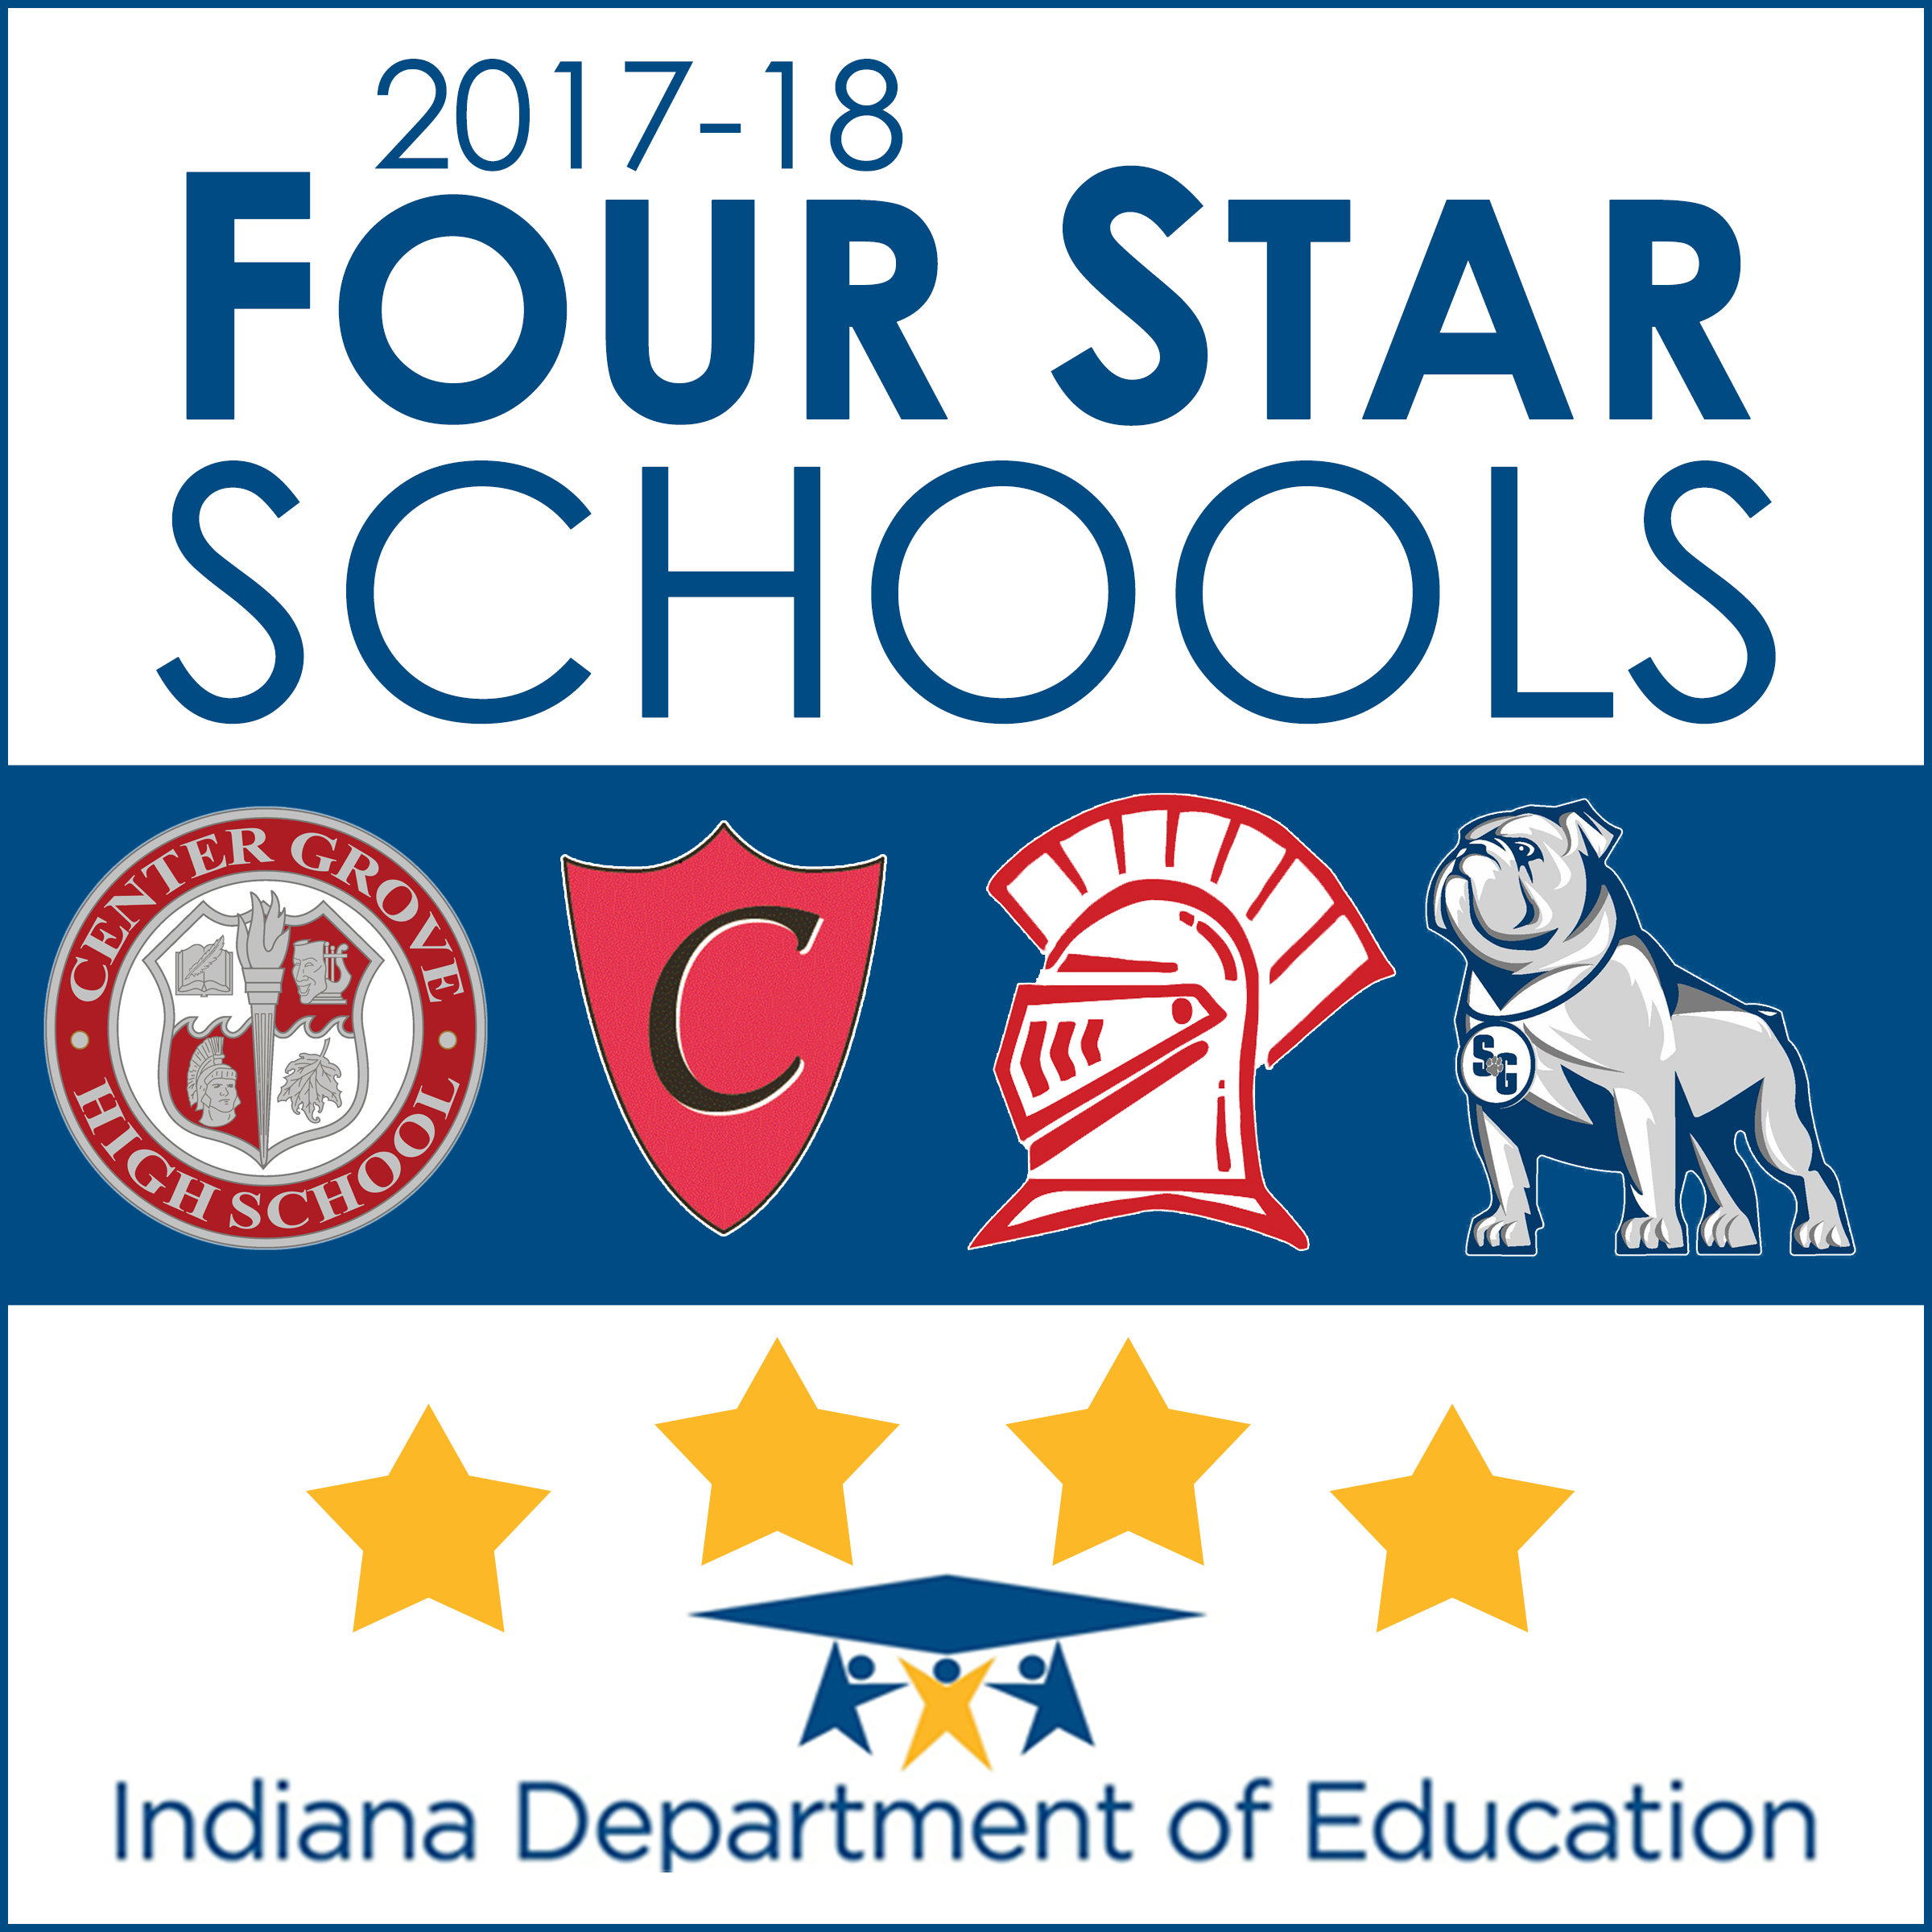 Four Center Grove schools awarded Four Star Status